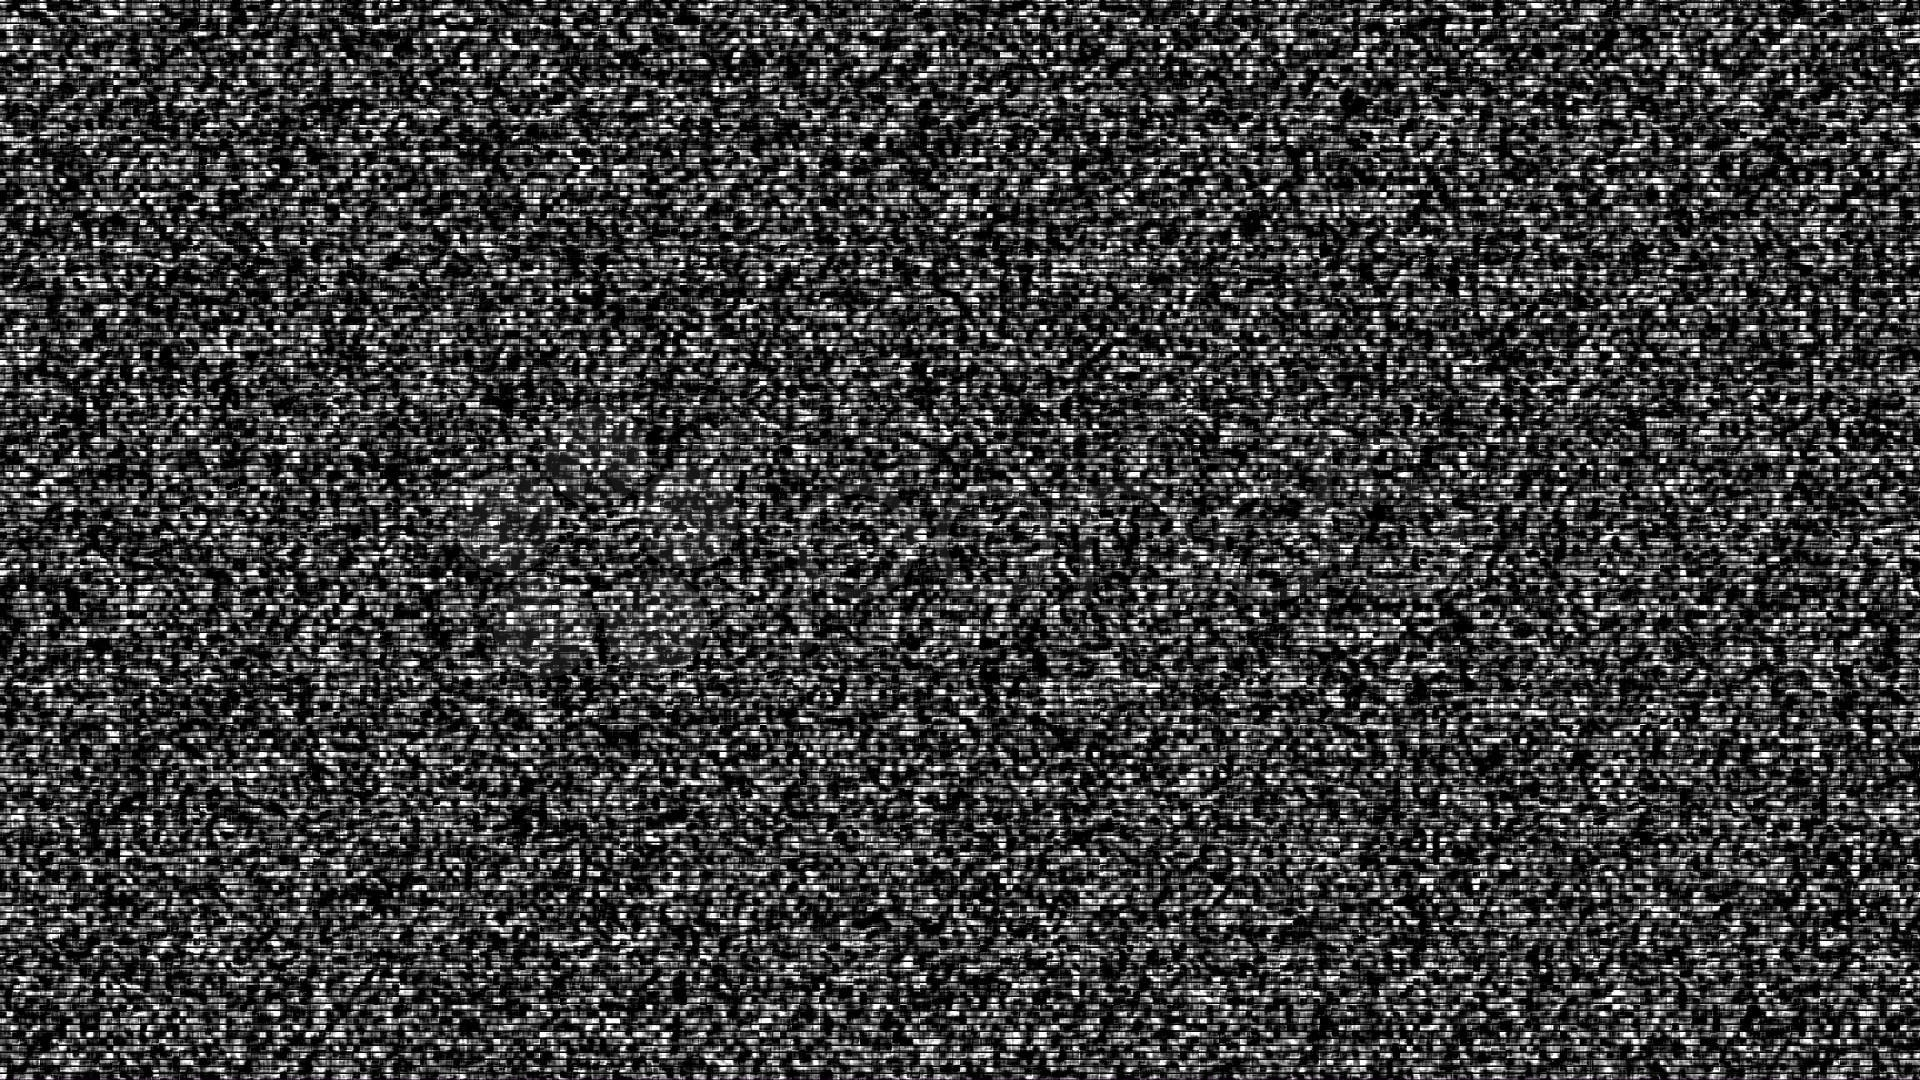 1920x1080 colorful tv static background tv static noise with sound